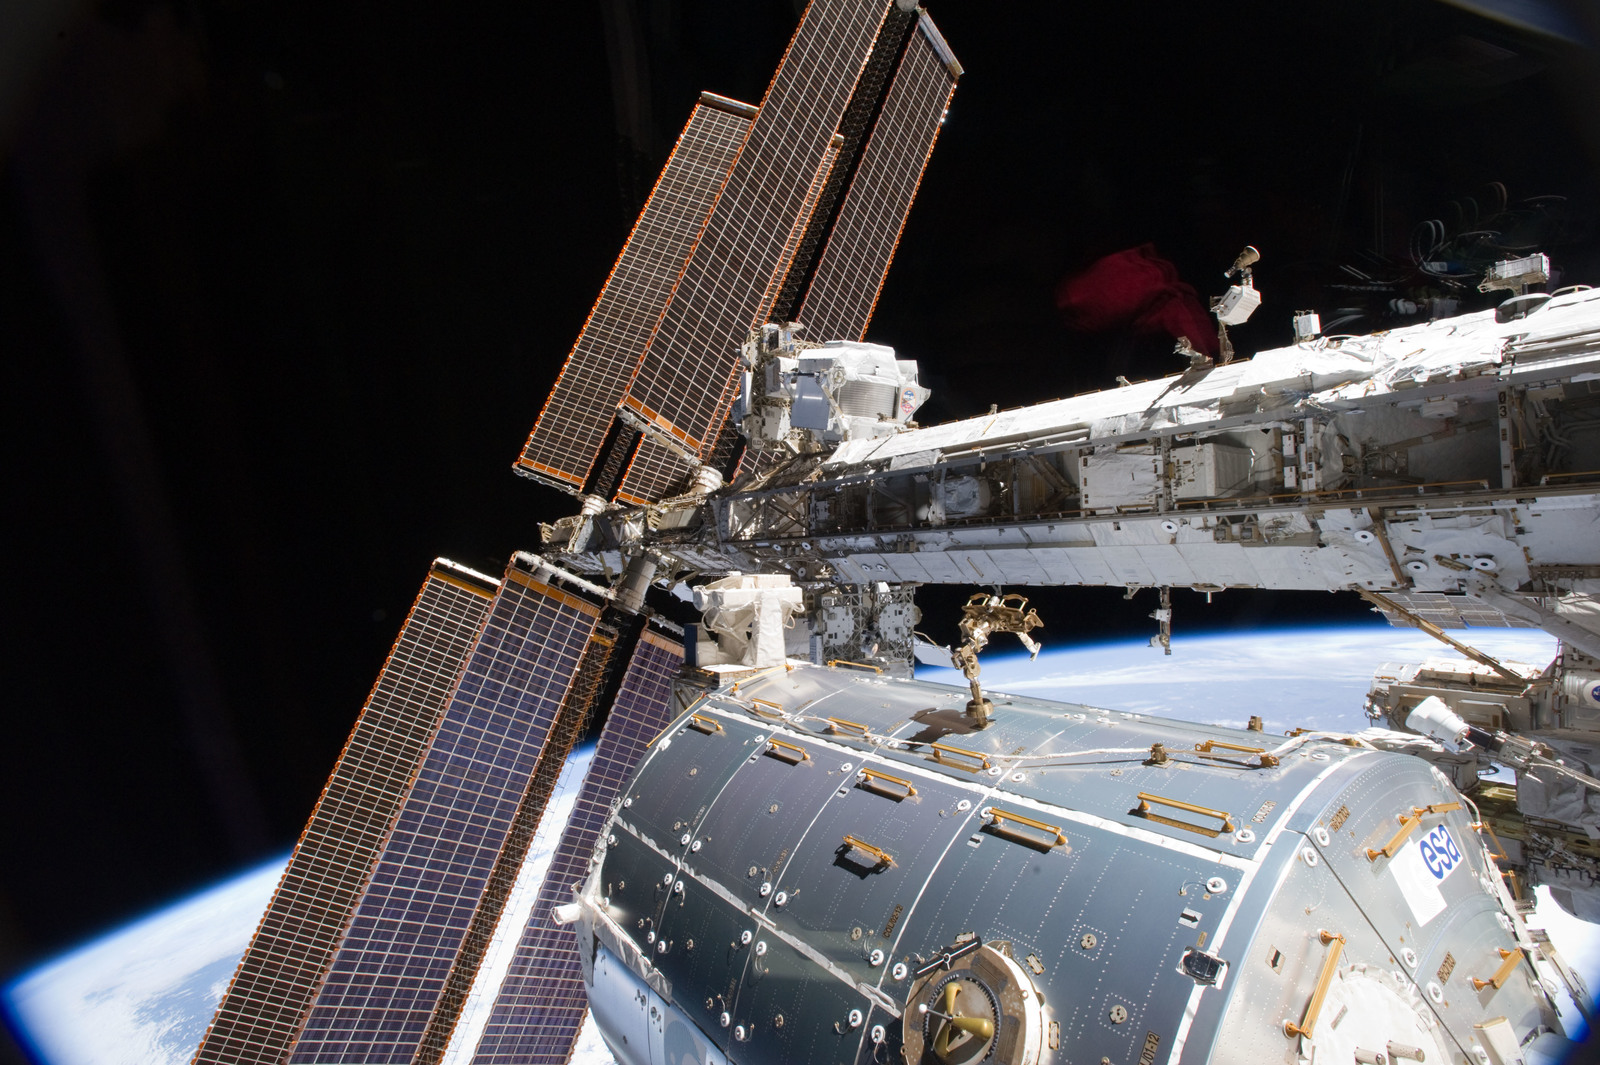 S134E007534 - STS-134 - View of the AMS-2 mounted on the S3 Truss